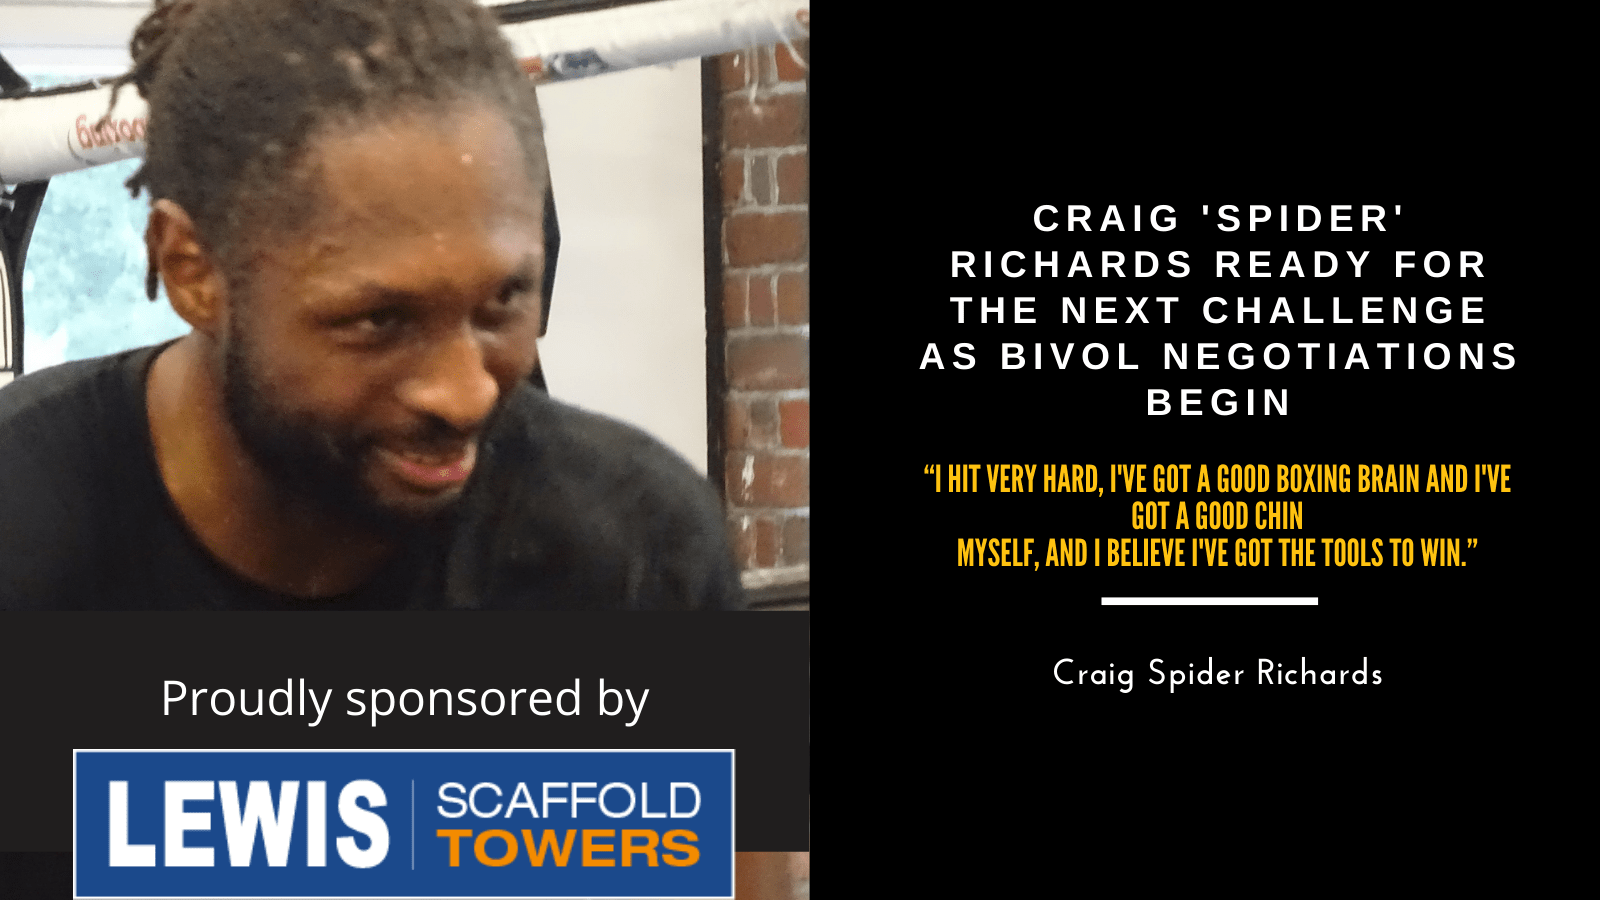 Craig update 25thFeb2021-Ready for the Next challenge